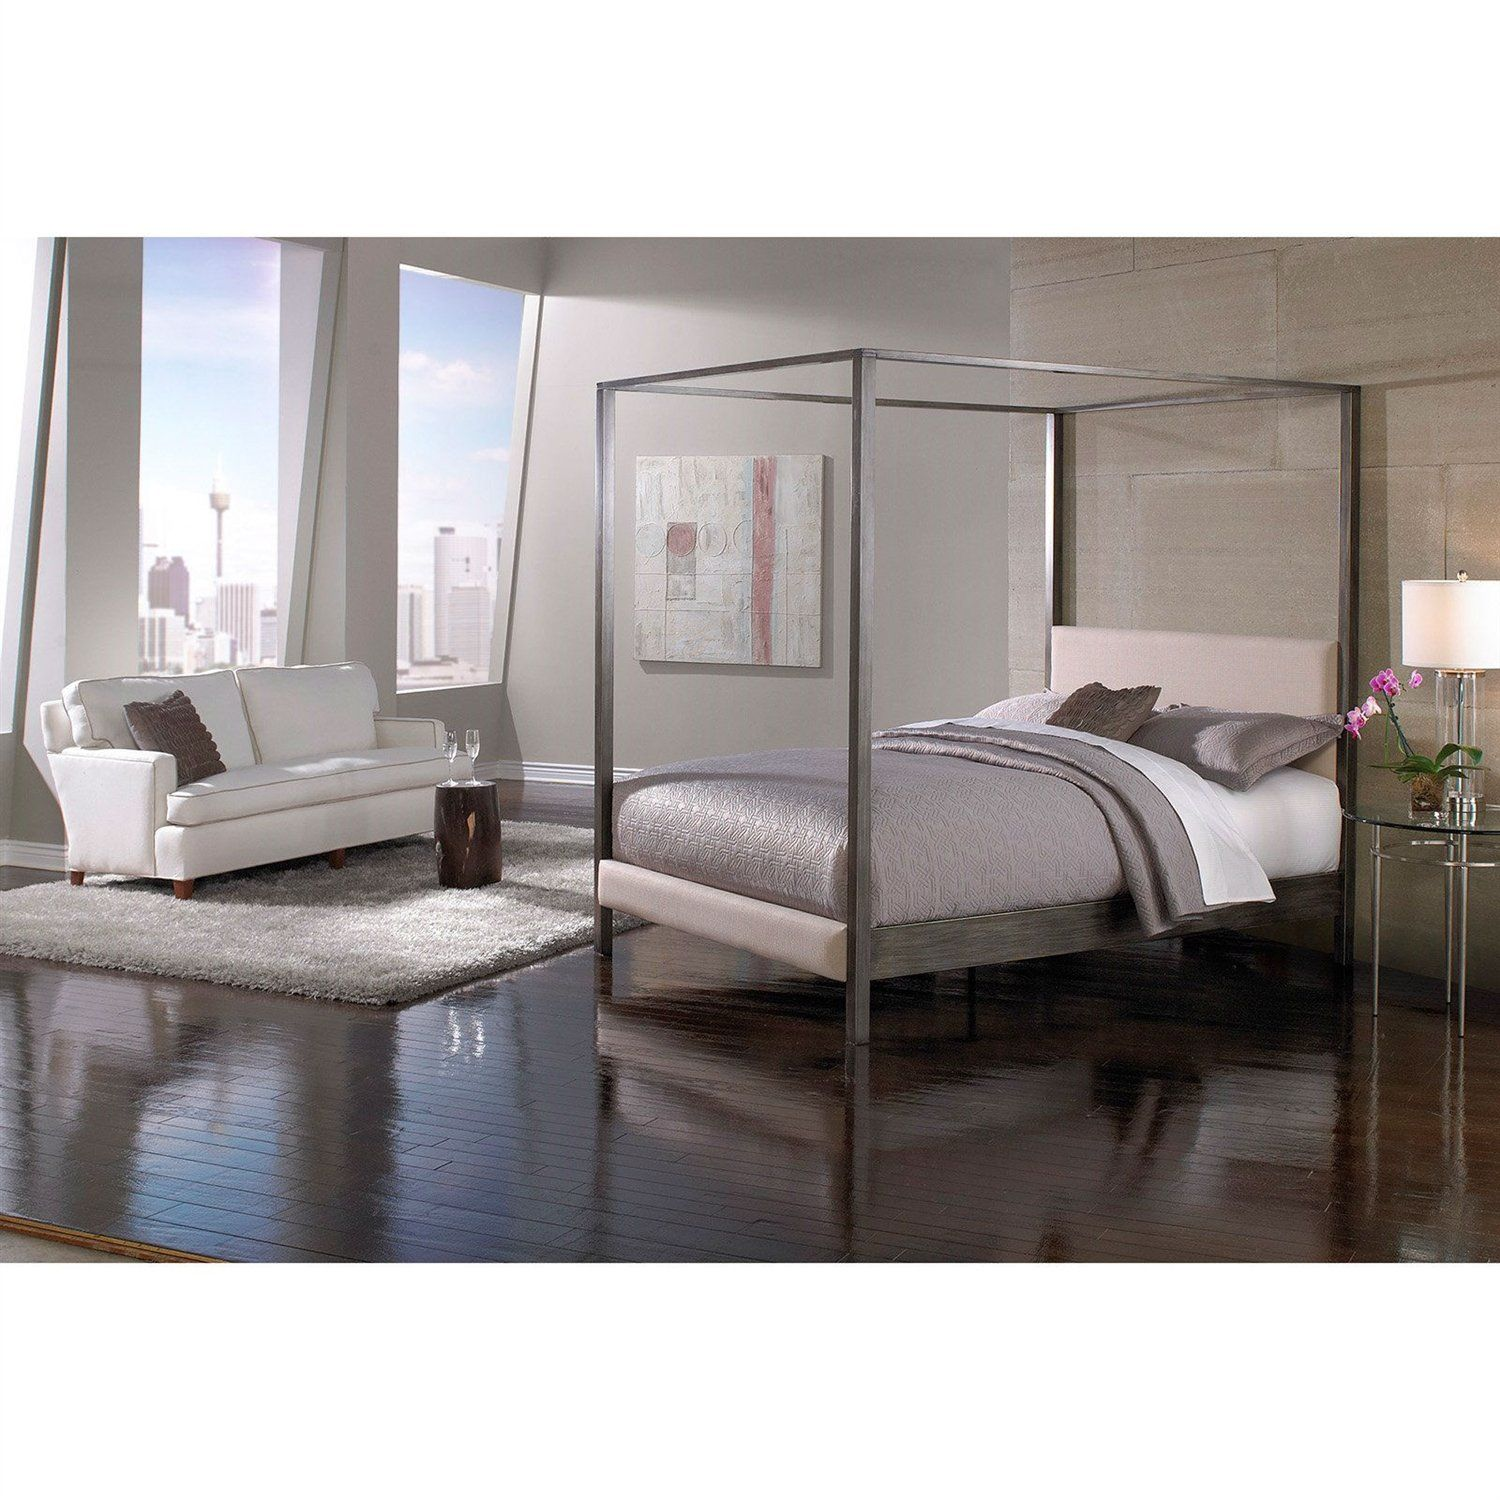 King size Modern Metal Platform Canopy Bed Frame with